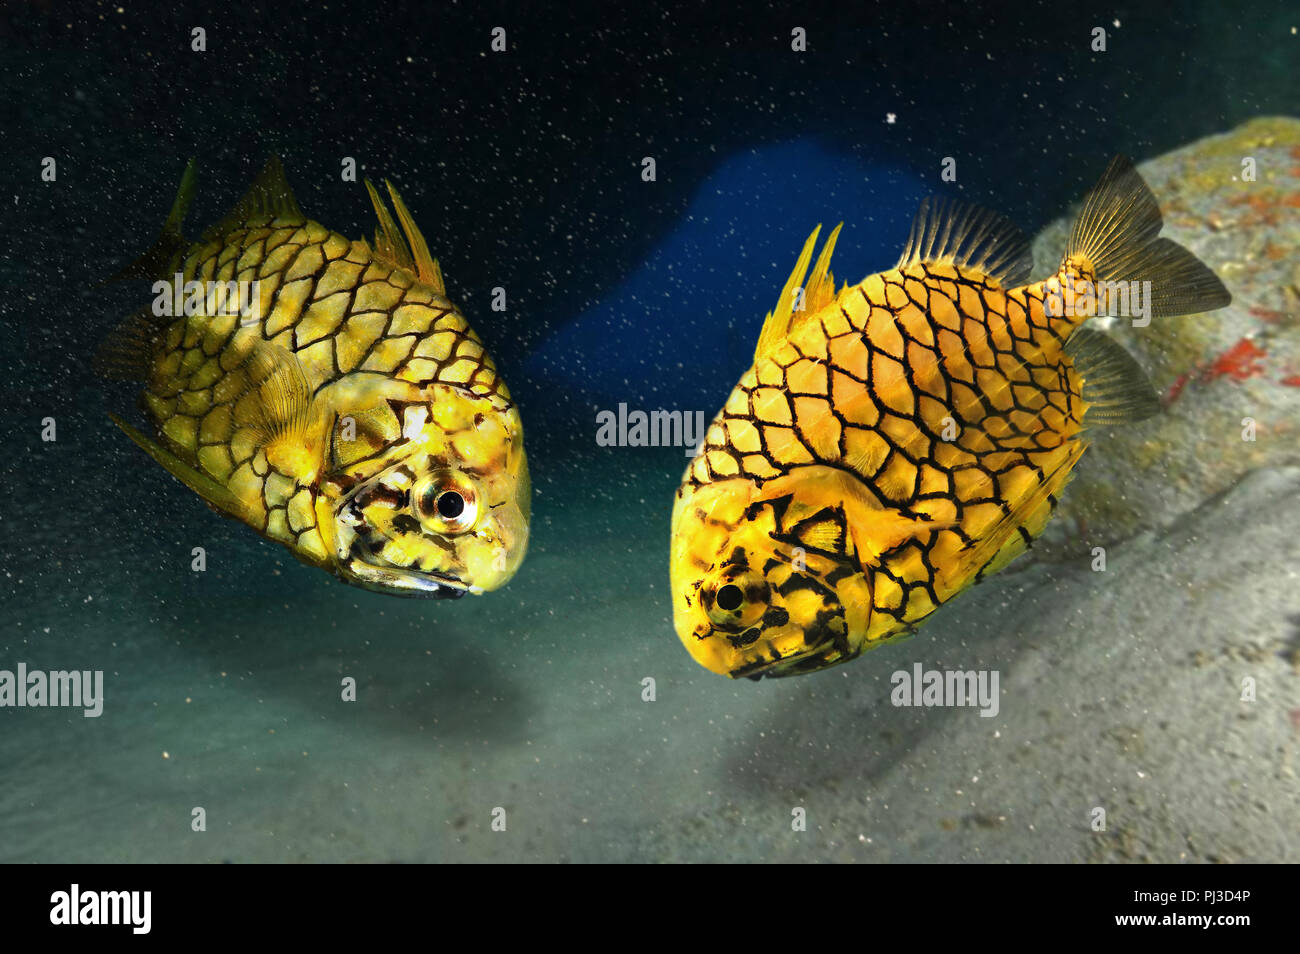 Pineapplefish, Cleidopus gloriamaris, all'interno di grotte subacquee. Due pesci in cofrontation. Nota Prima pinna dorsale spine sollevata. Il pineapplefish è un Immagini Stock